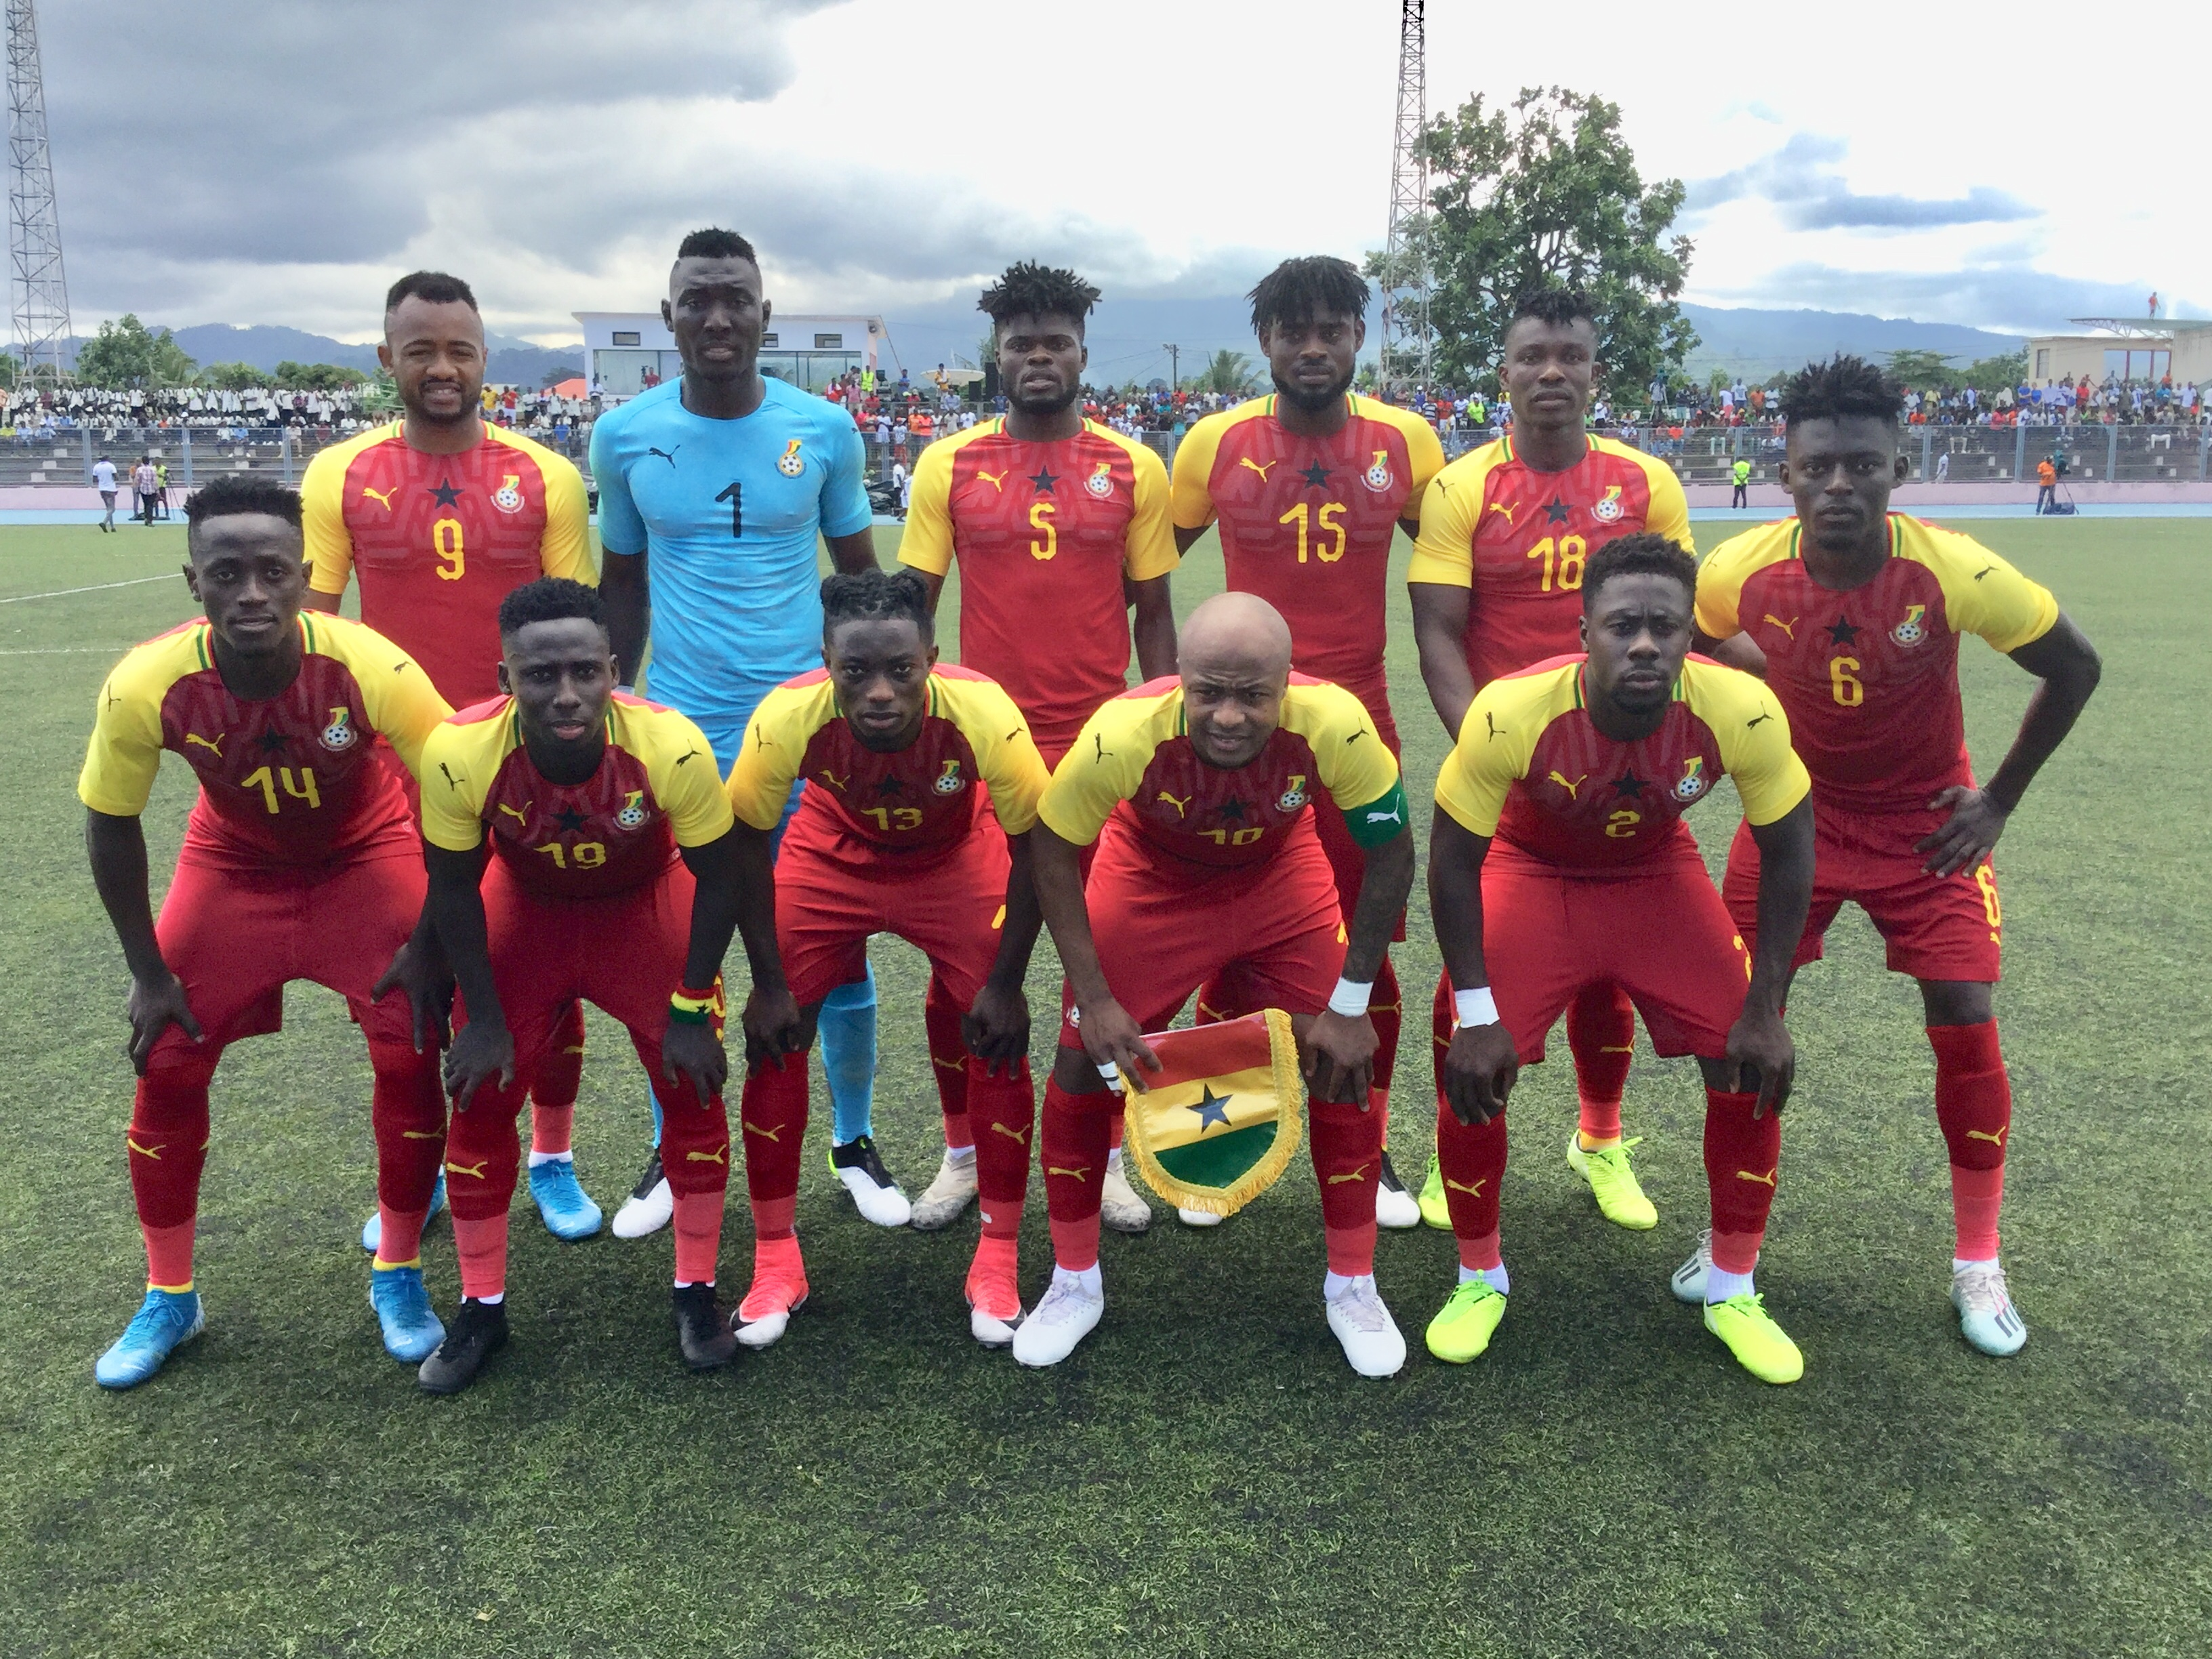 AFCON 2021 qualifier: Ghana defeats São Tomé to go top